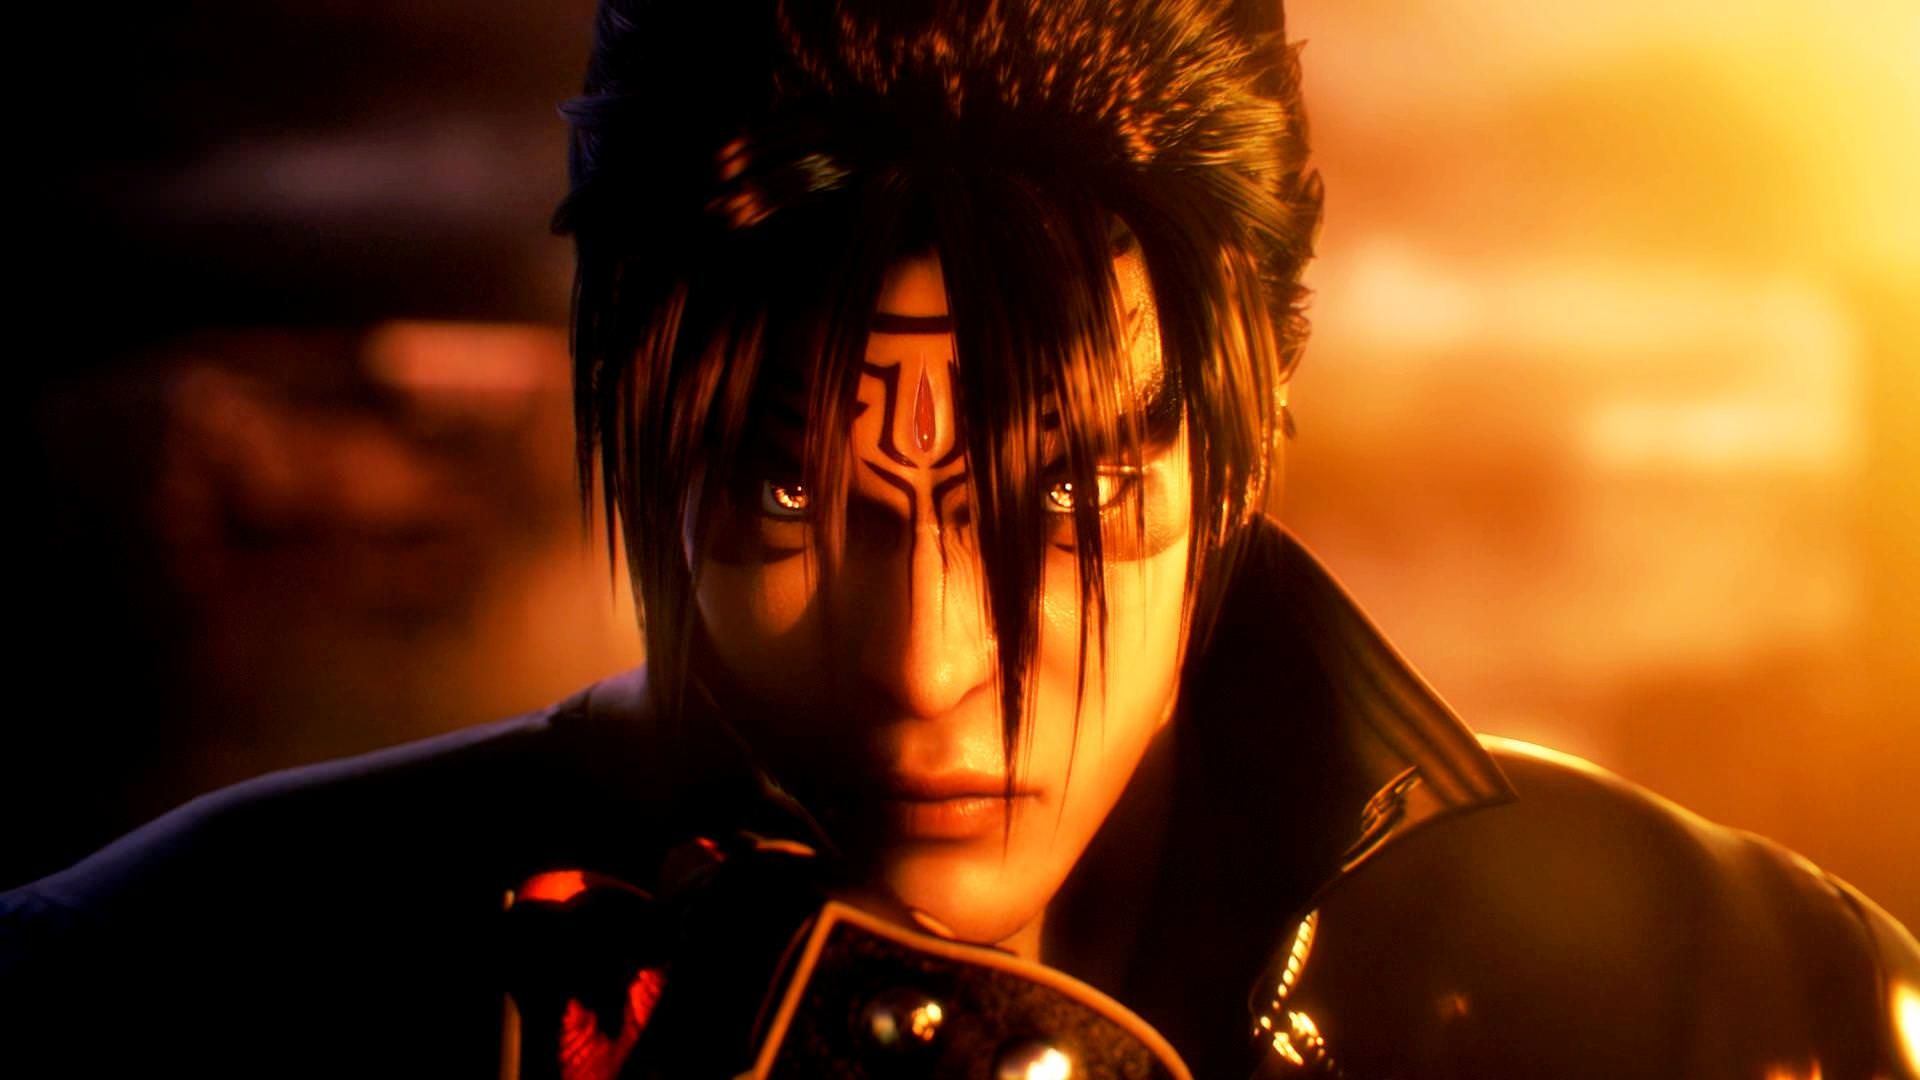 Jin Kazama Wallpapers For Your Pc 1920x1080 Tekken Jin Kazama